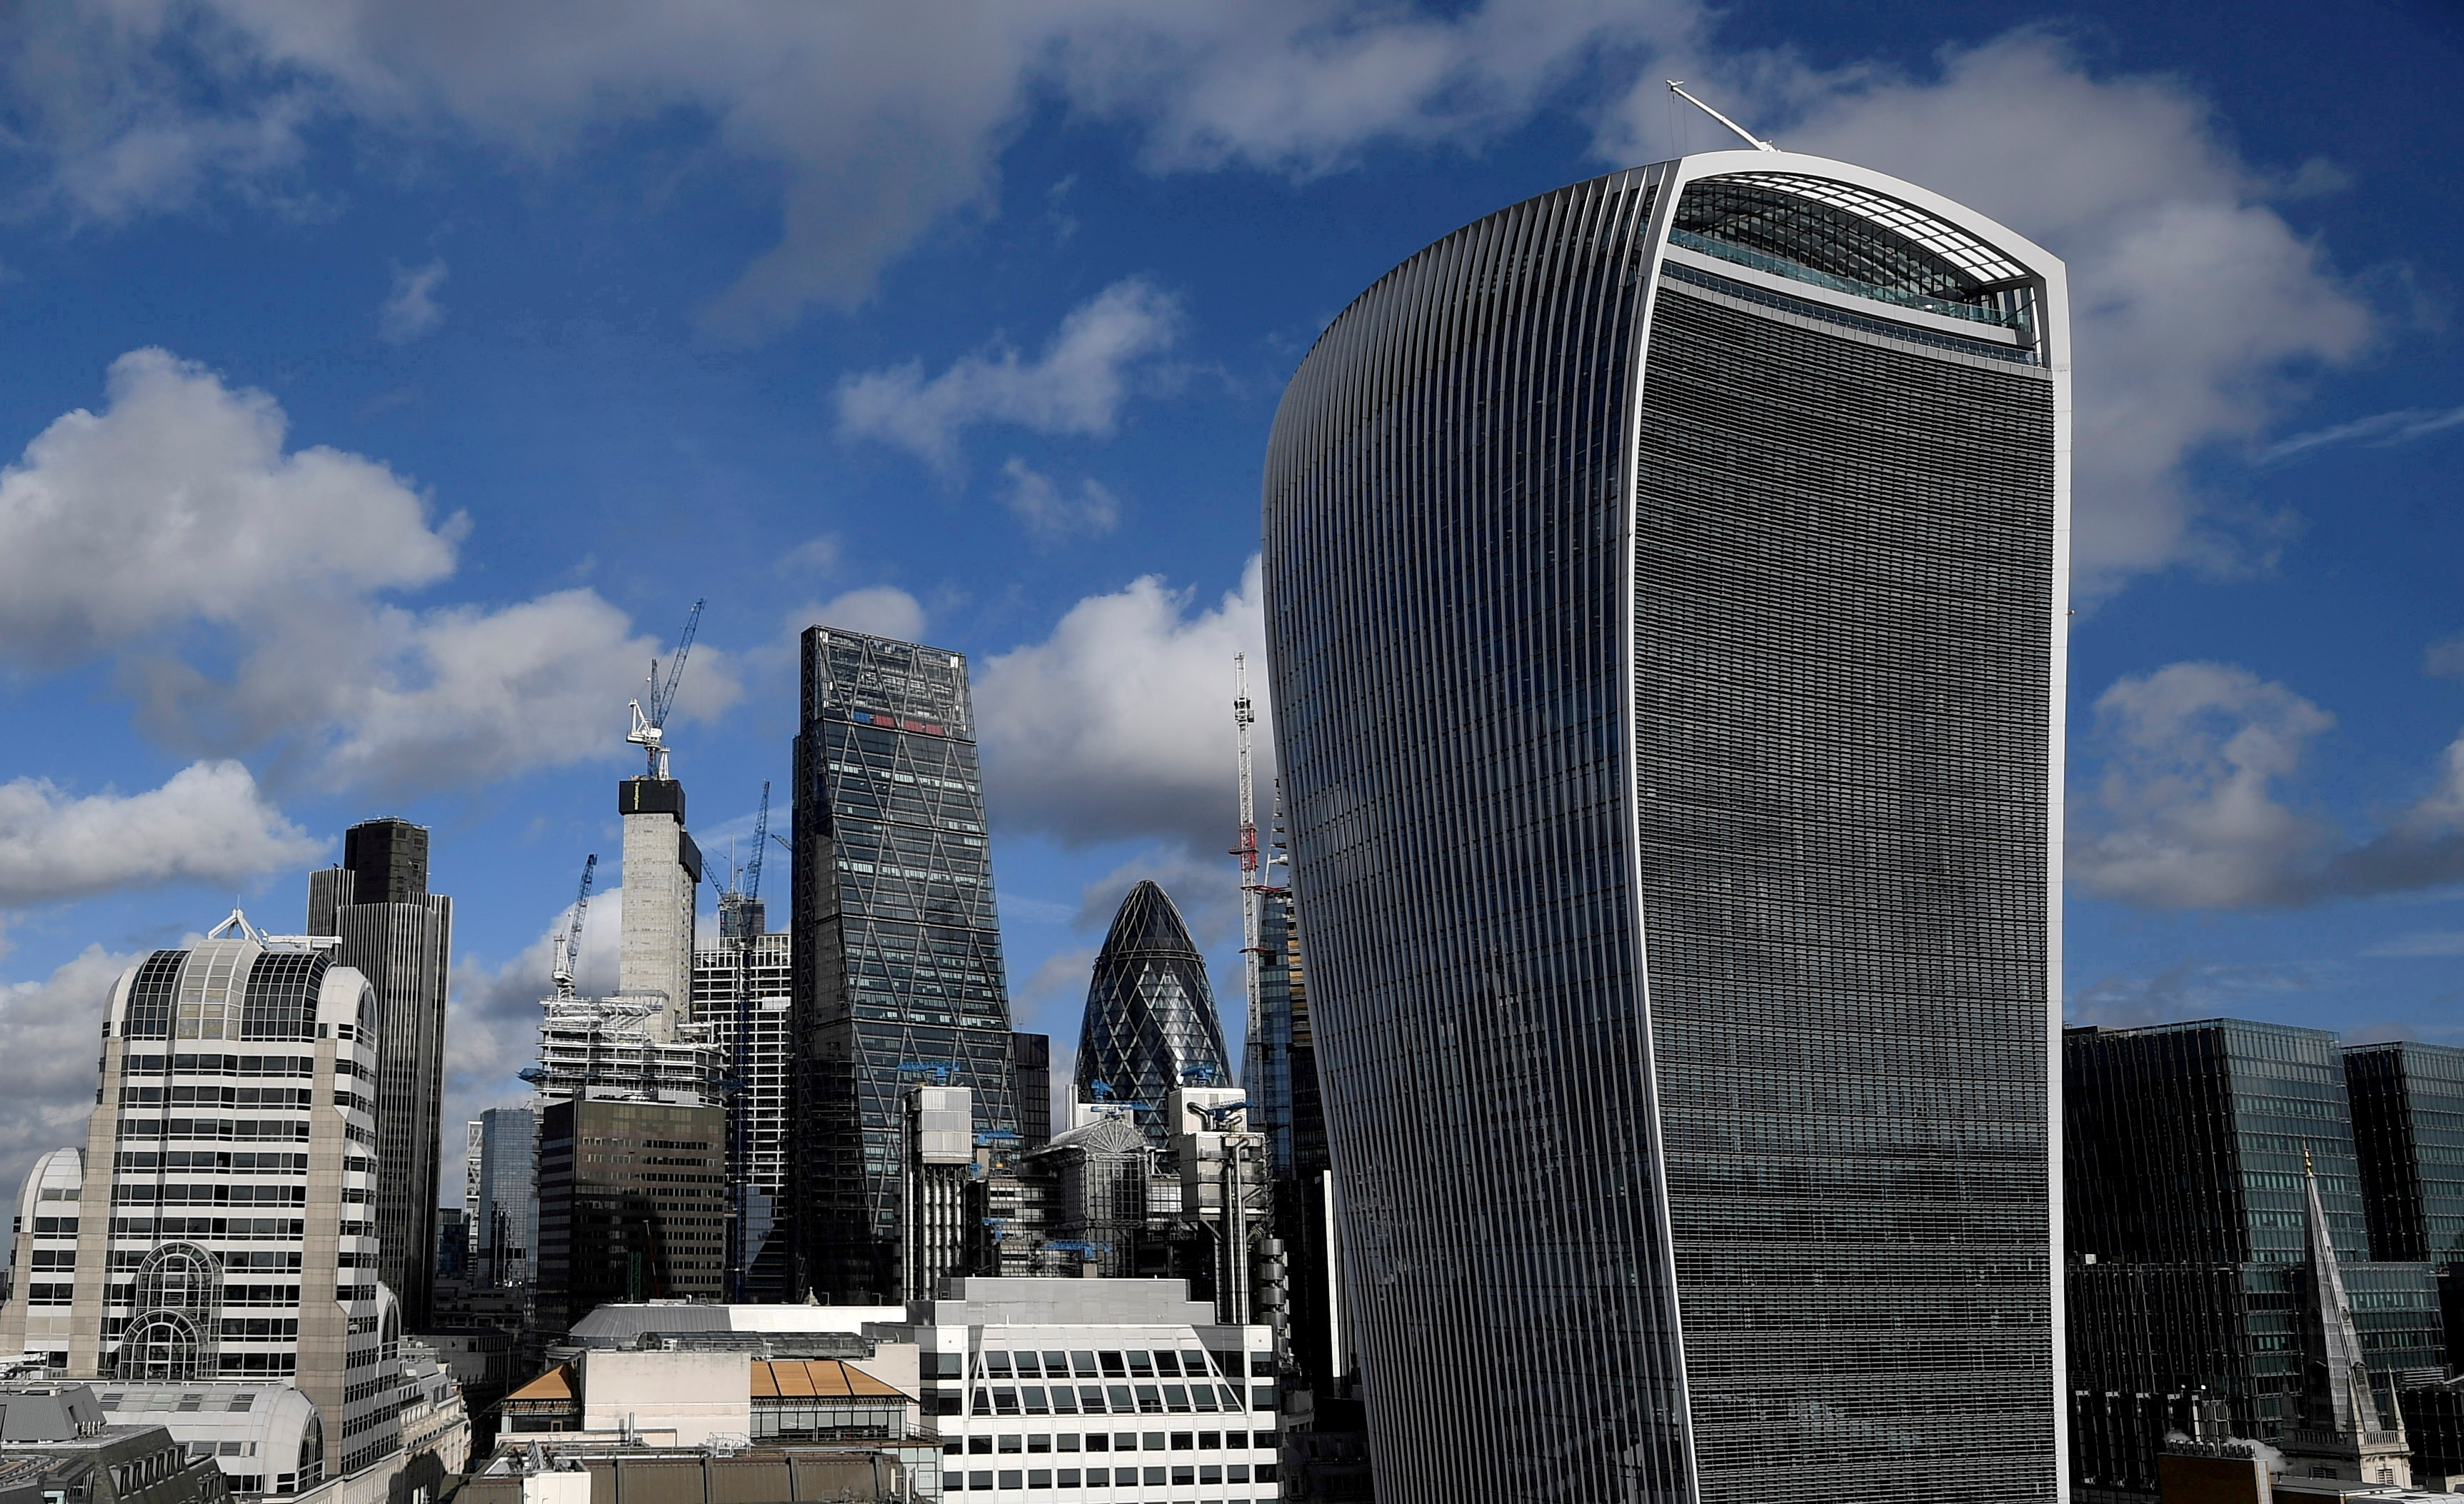 The City of London financial district is seen with office skyscrapers commonly known as 'Cheesegrater', 'Gherkin' and 'Walkie Talkie' seen in London, Britain, January 25, 2018. REUTERS/Toby Melville